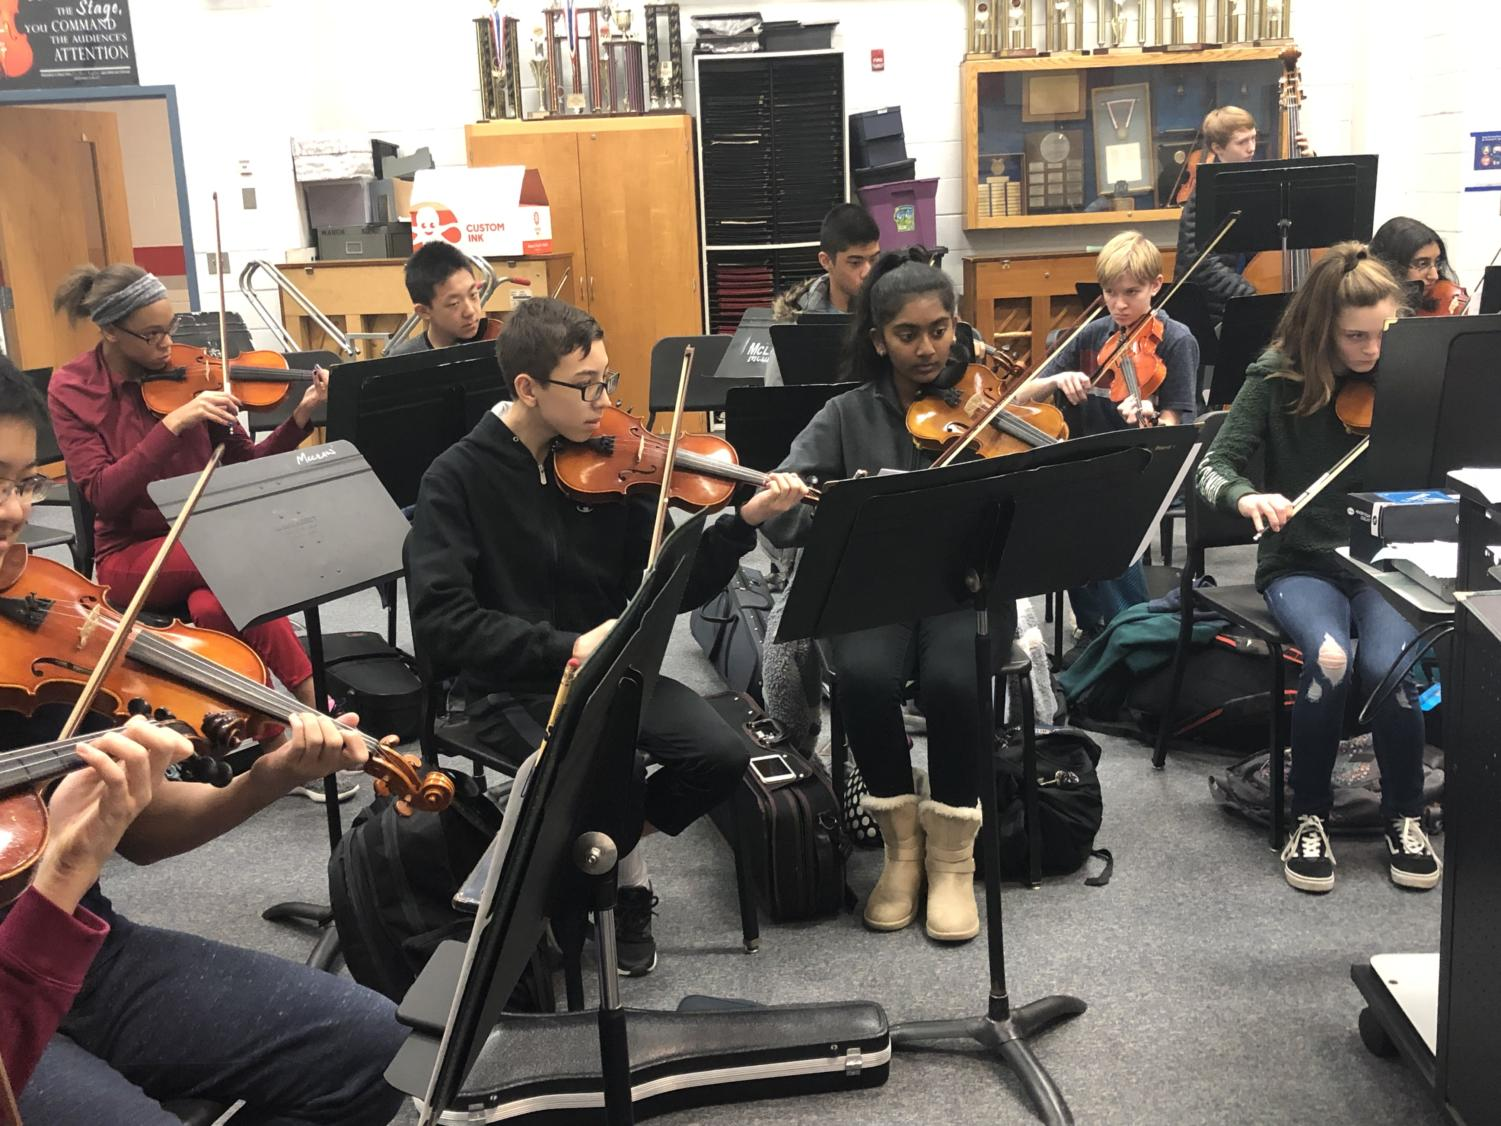 Students practice their pieces during their orchestra class. Photo by Dua Mobin.